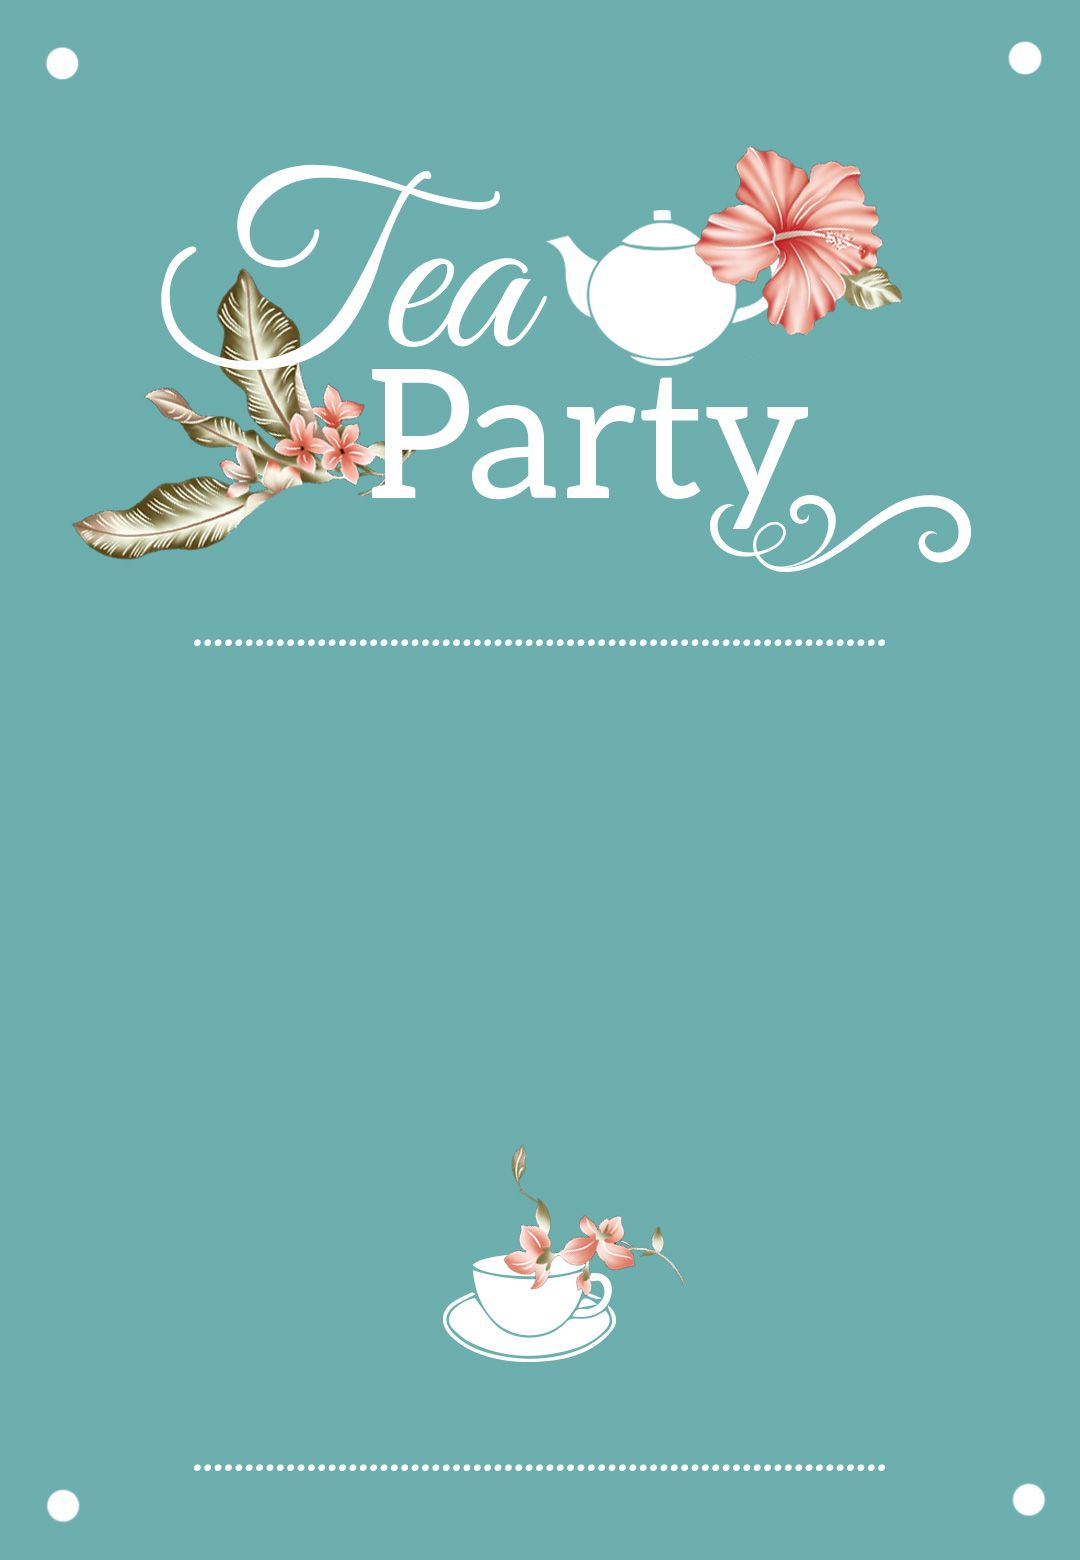 photograph regarding Free Printable Bridal Shower Invitation Templates named Bridal Shower Tea Get together - Free of charge Printable Bridal Shower